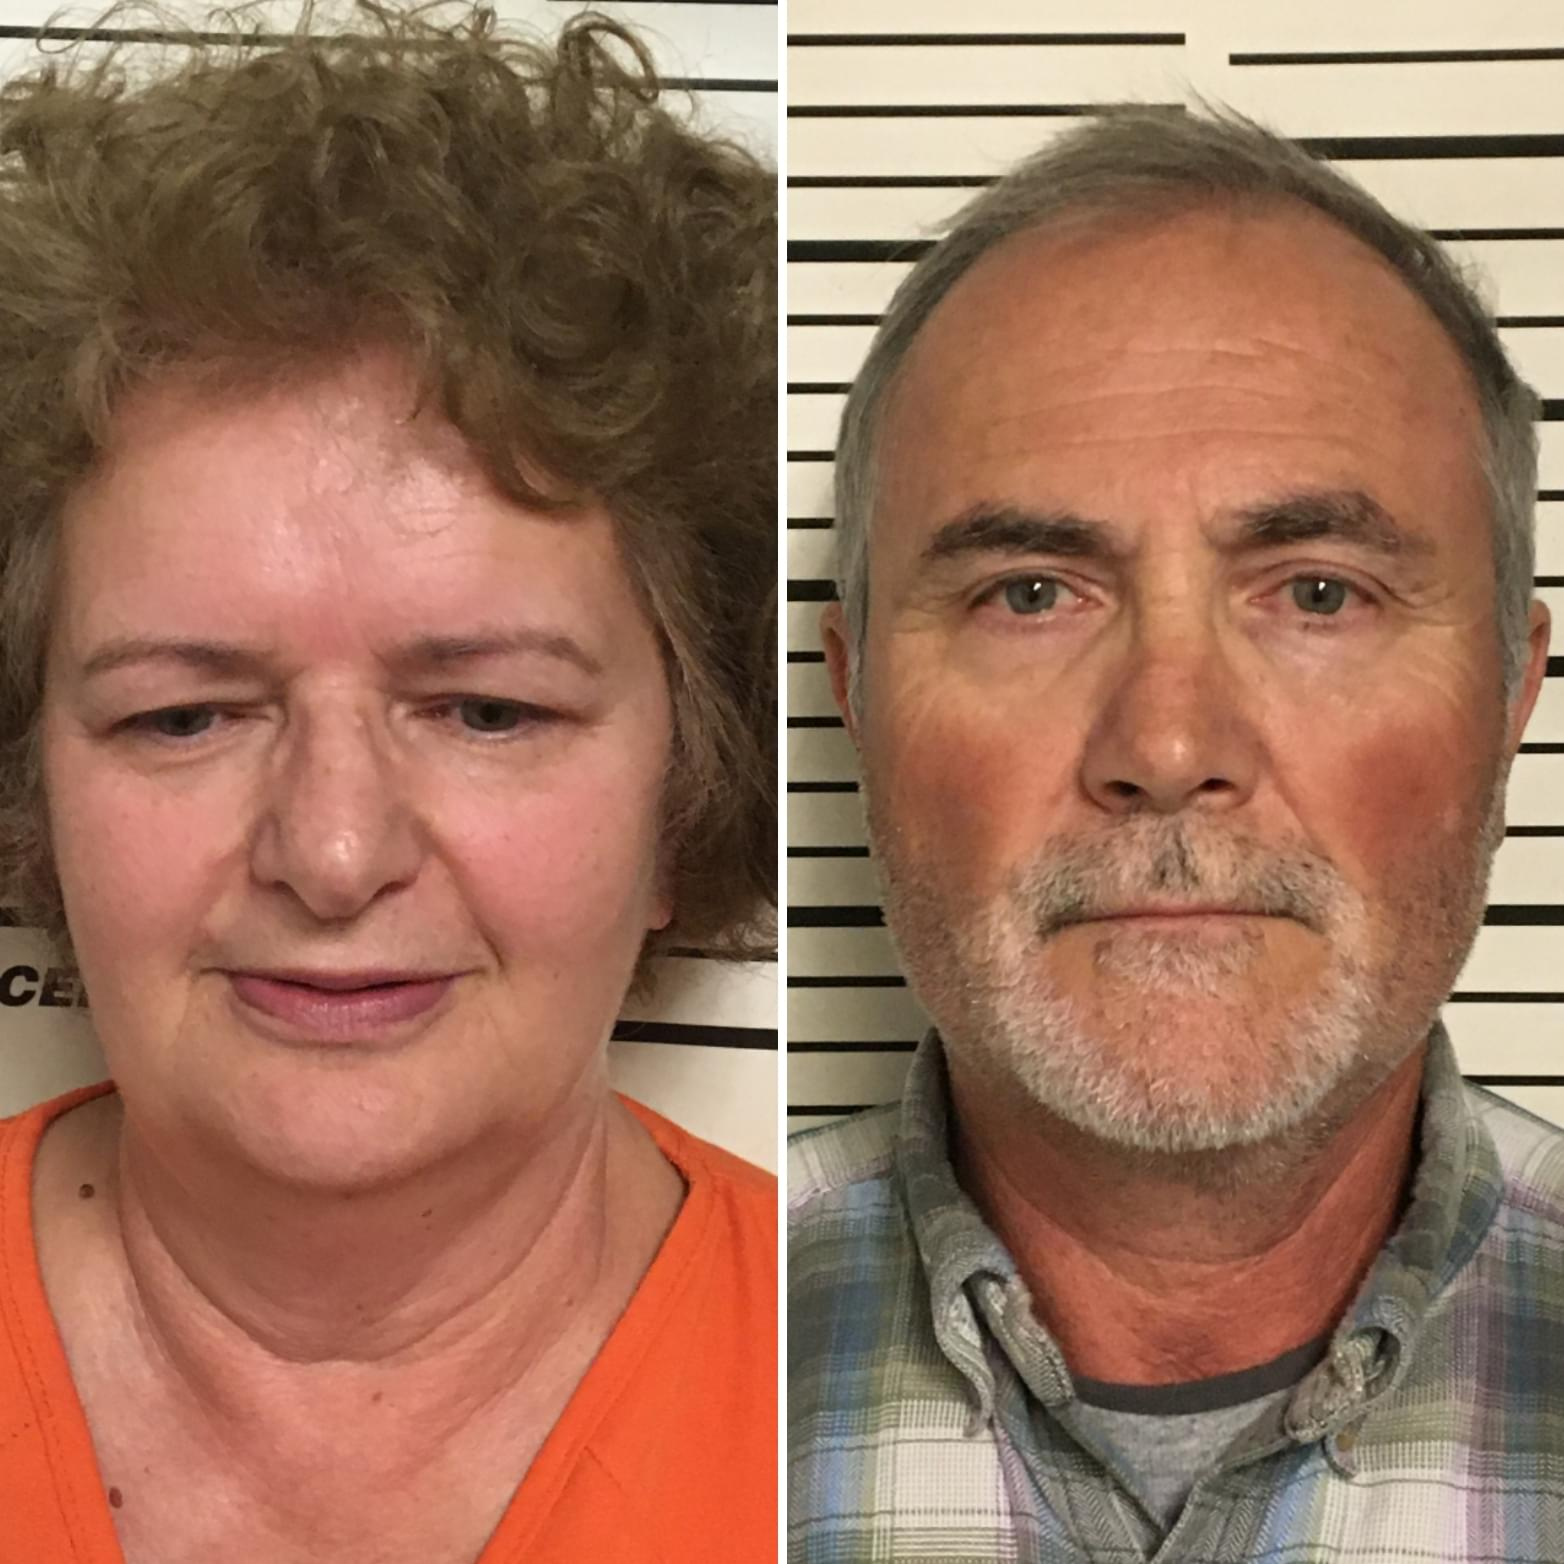 Newport Business Owners Arrested for Attempted Arson